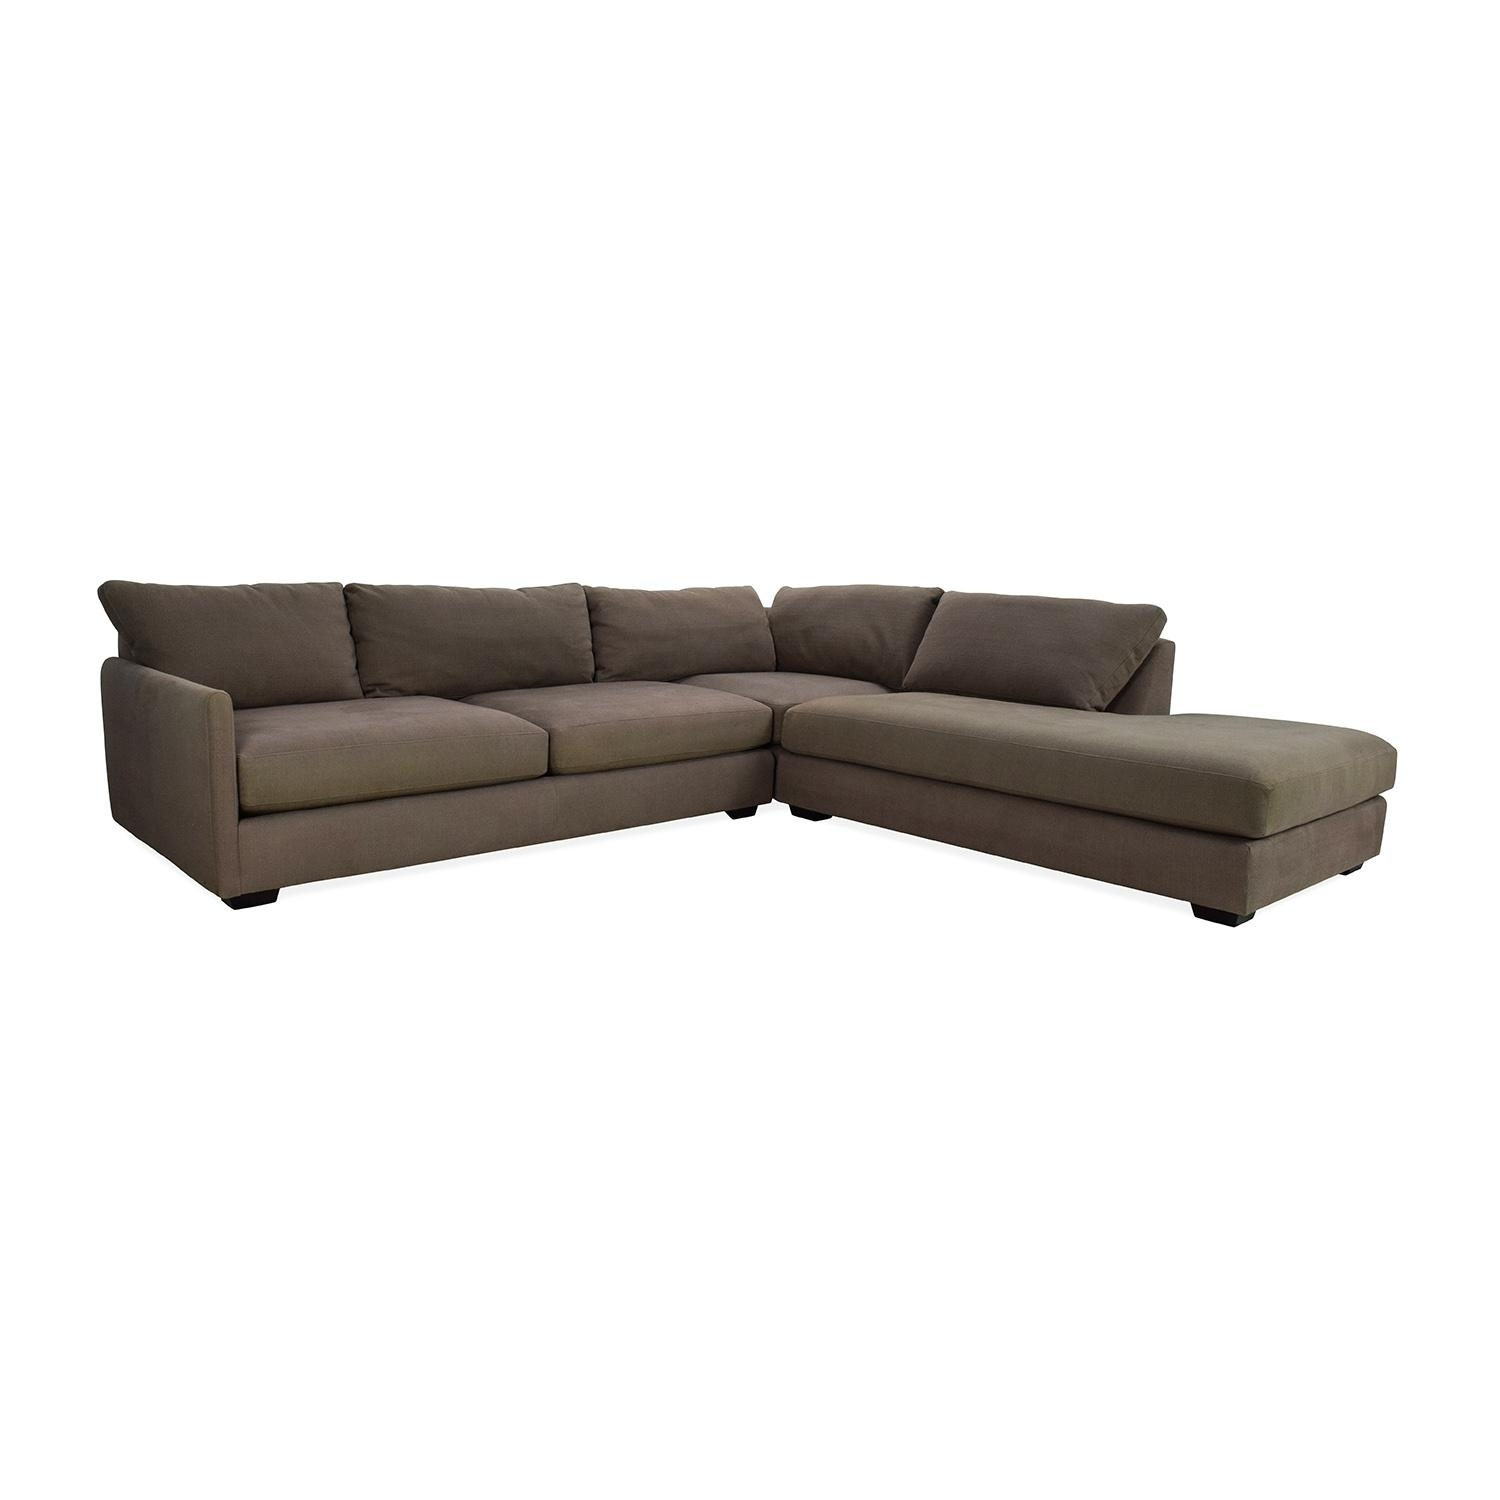 82% Off – Crate And Barrel Crate & Barrel Domino Sectional Sofa With Regard To Crate And Barrel Sectional (Image 3 of 15)